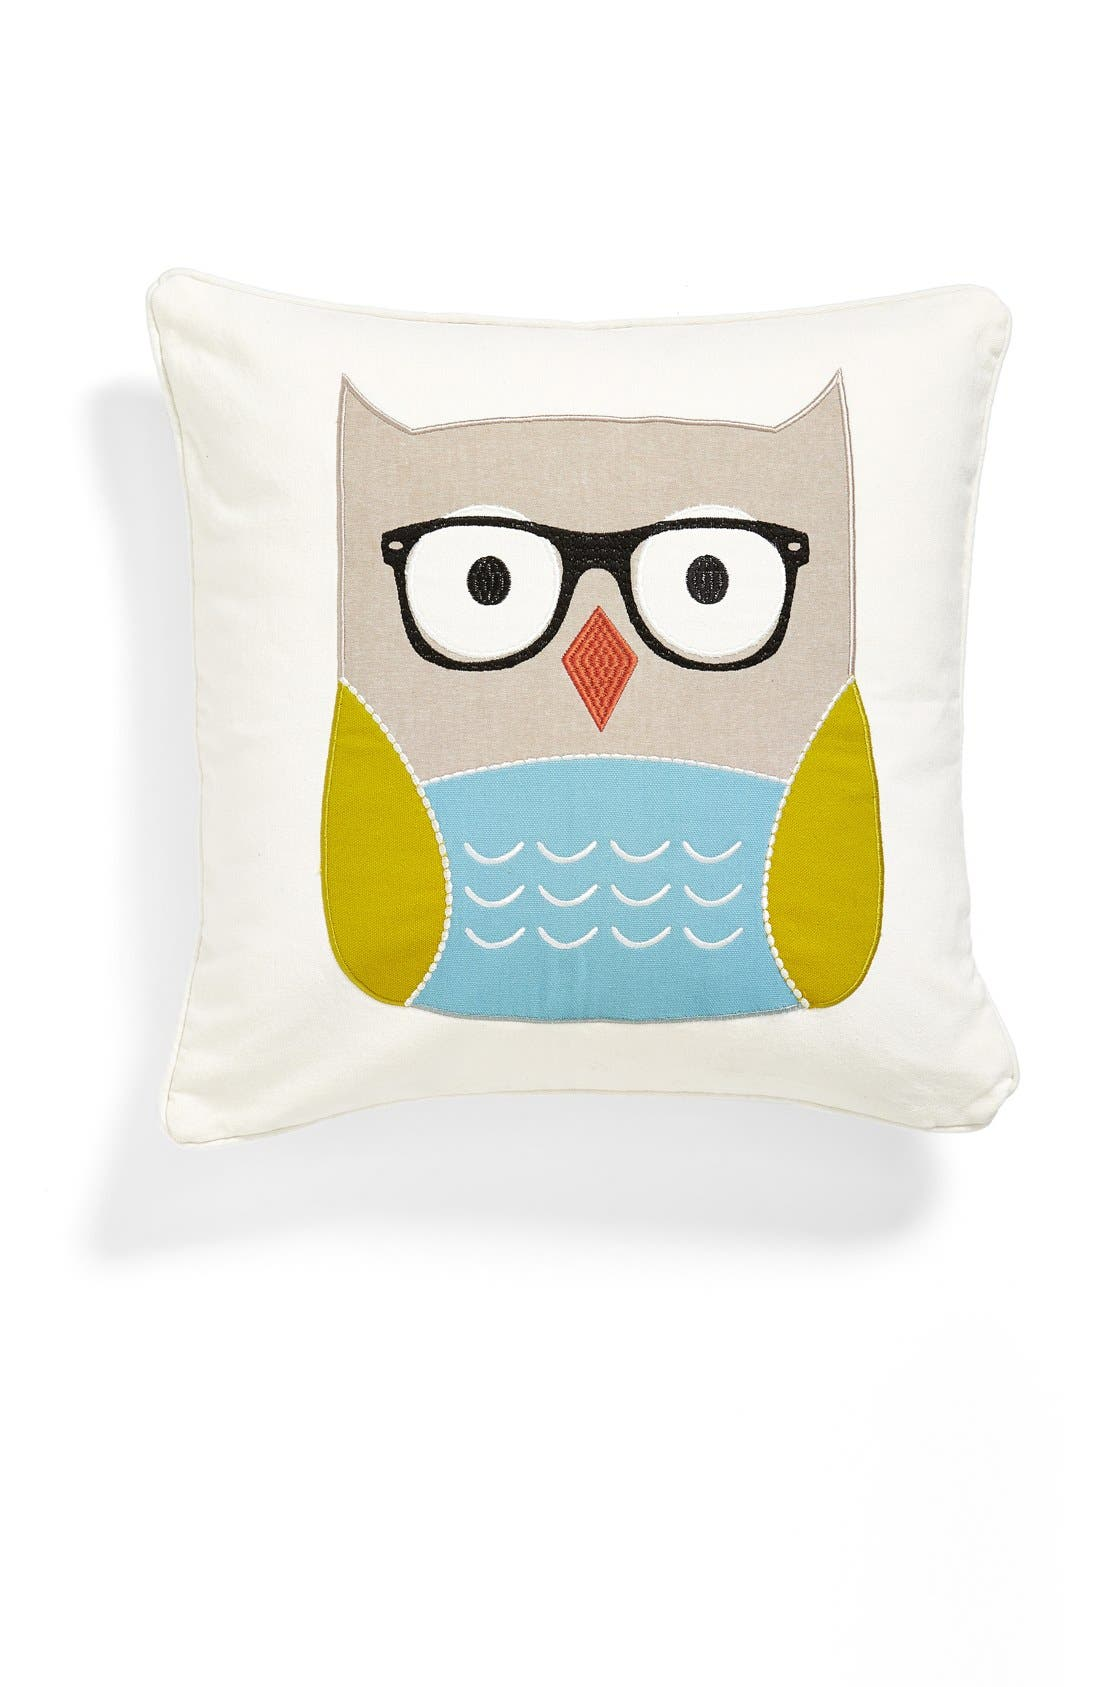 'Owl with Glasses' Accent Pillow,                             Main thumbnail 1, color,                             440